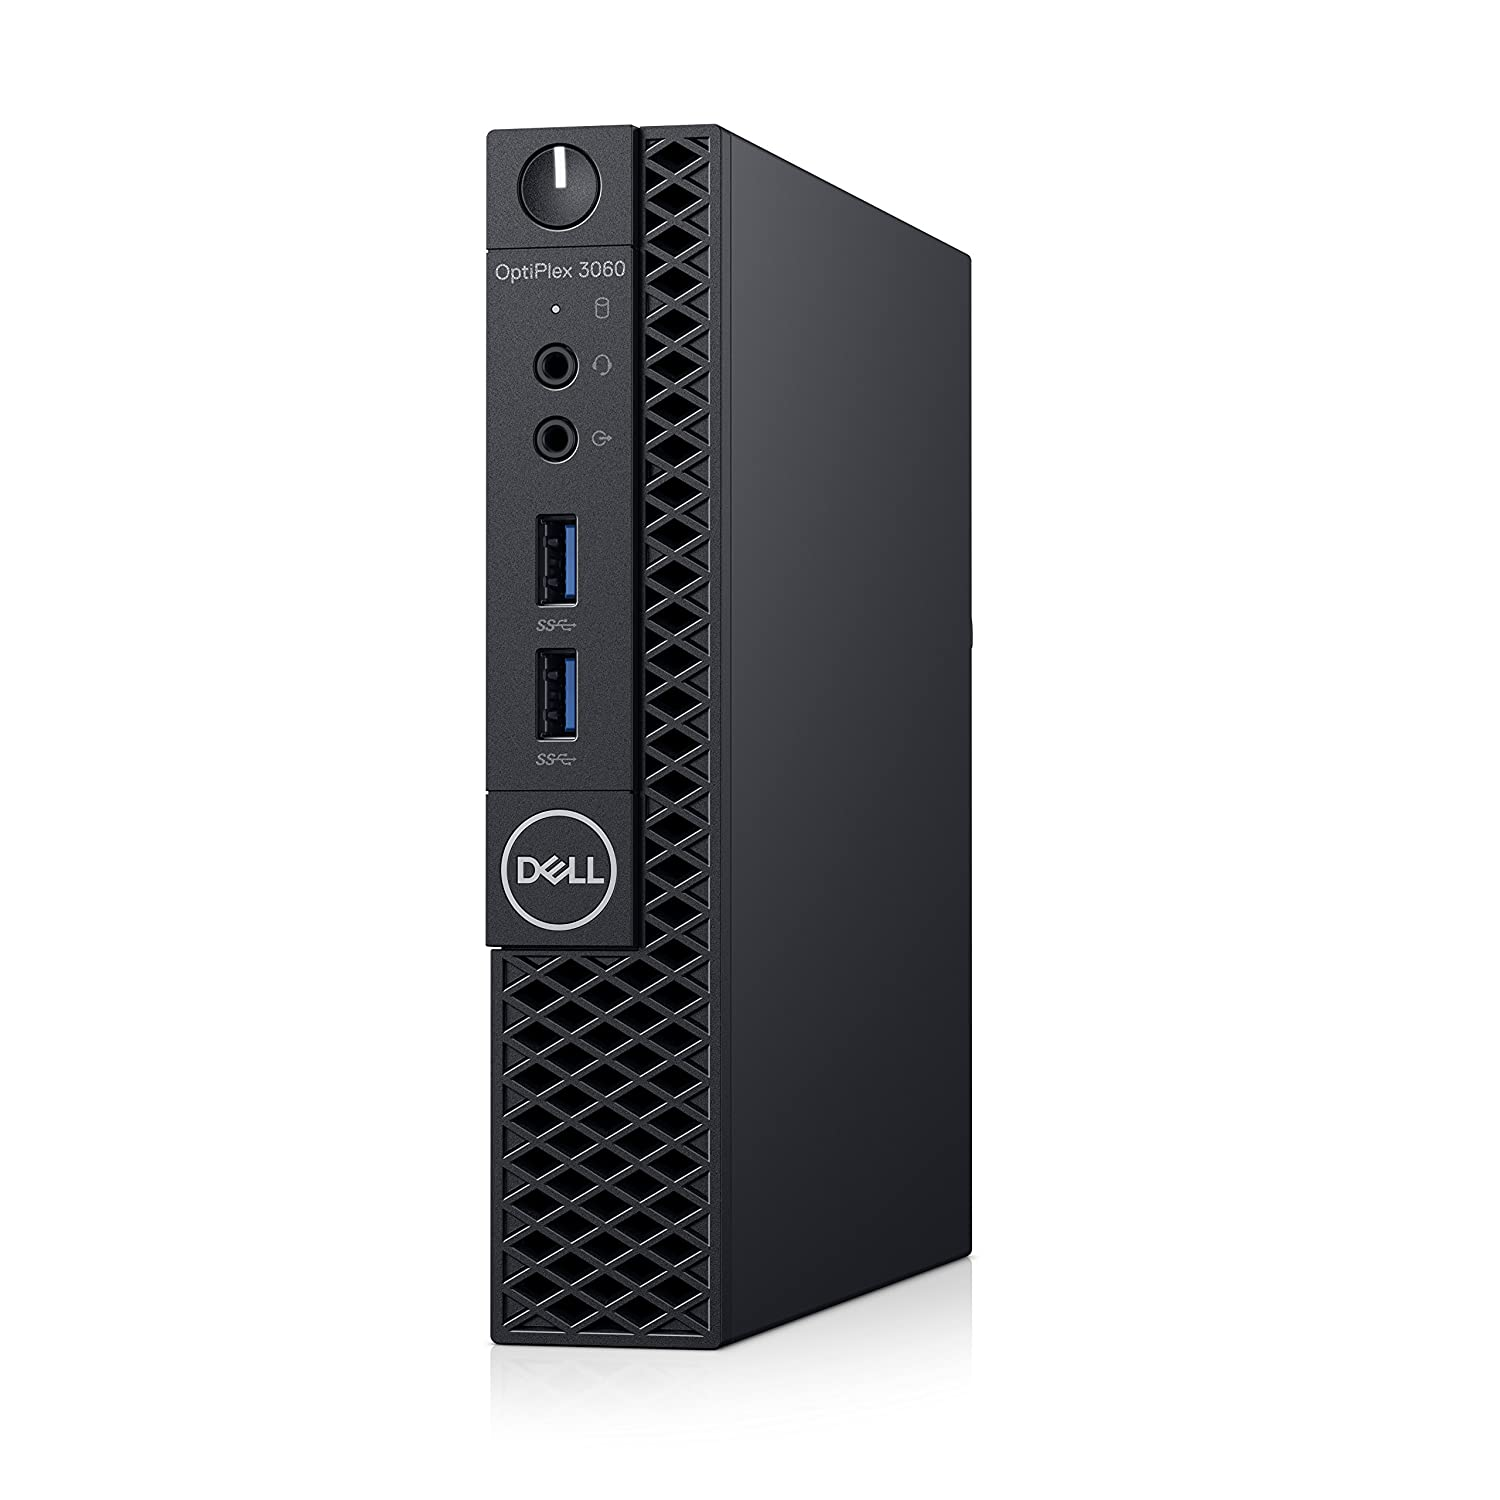 Amazon.com: Dell OP3060MFFXKF5K OptiPlex 3060 XKF5K Micro PC with Intel Core i5-8500T 2.1 GHz Hexa-core, 8GB RAM, 256GB SSD, Windows 10 Pro 64-bit: ...